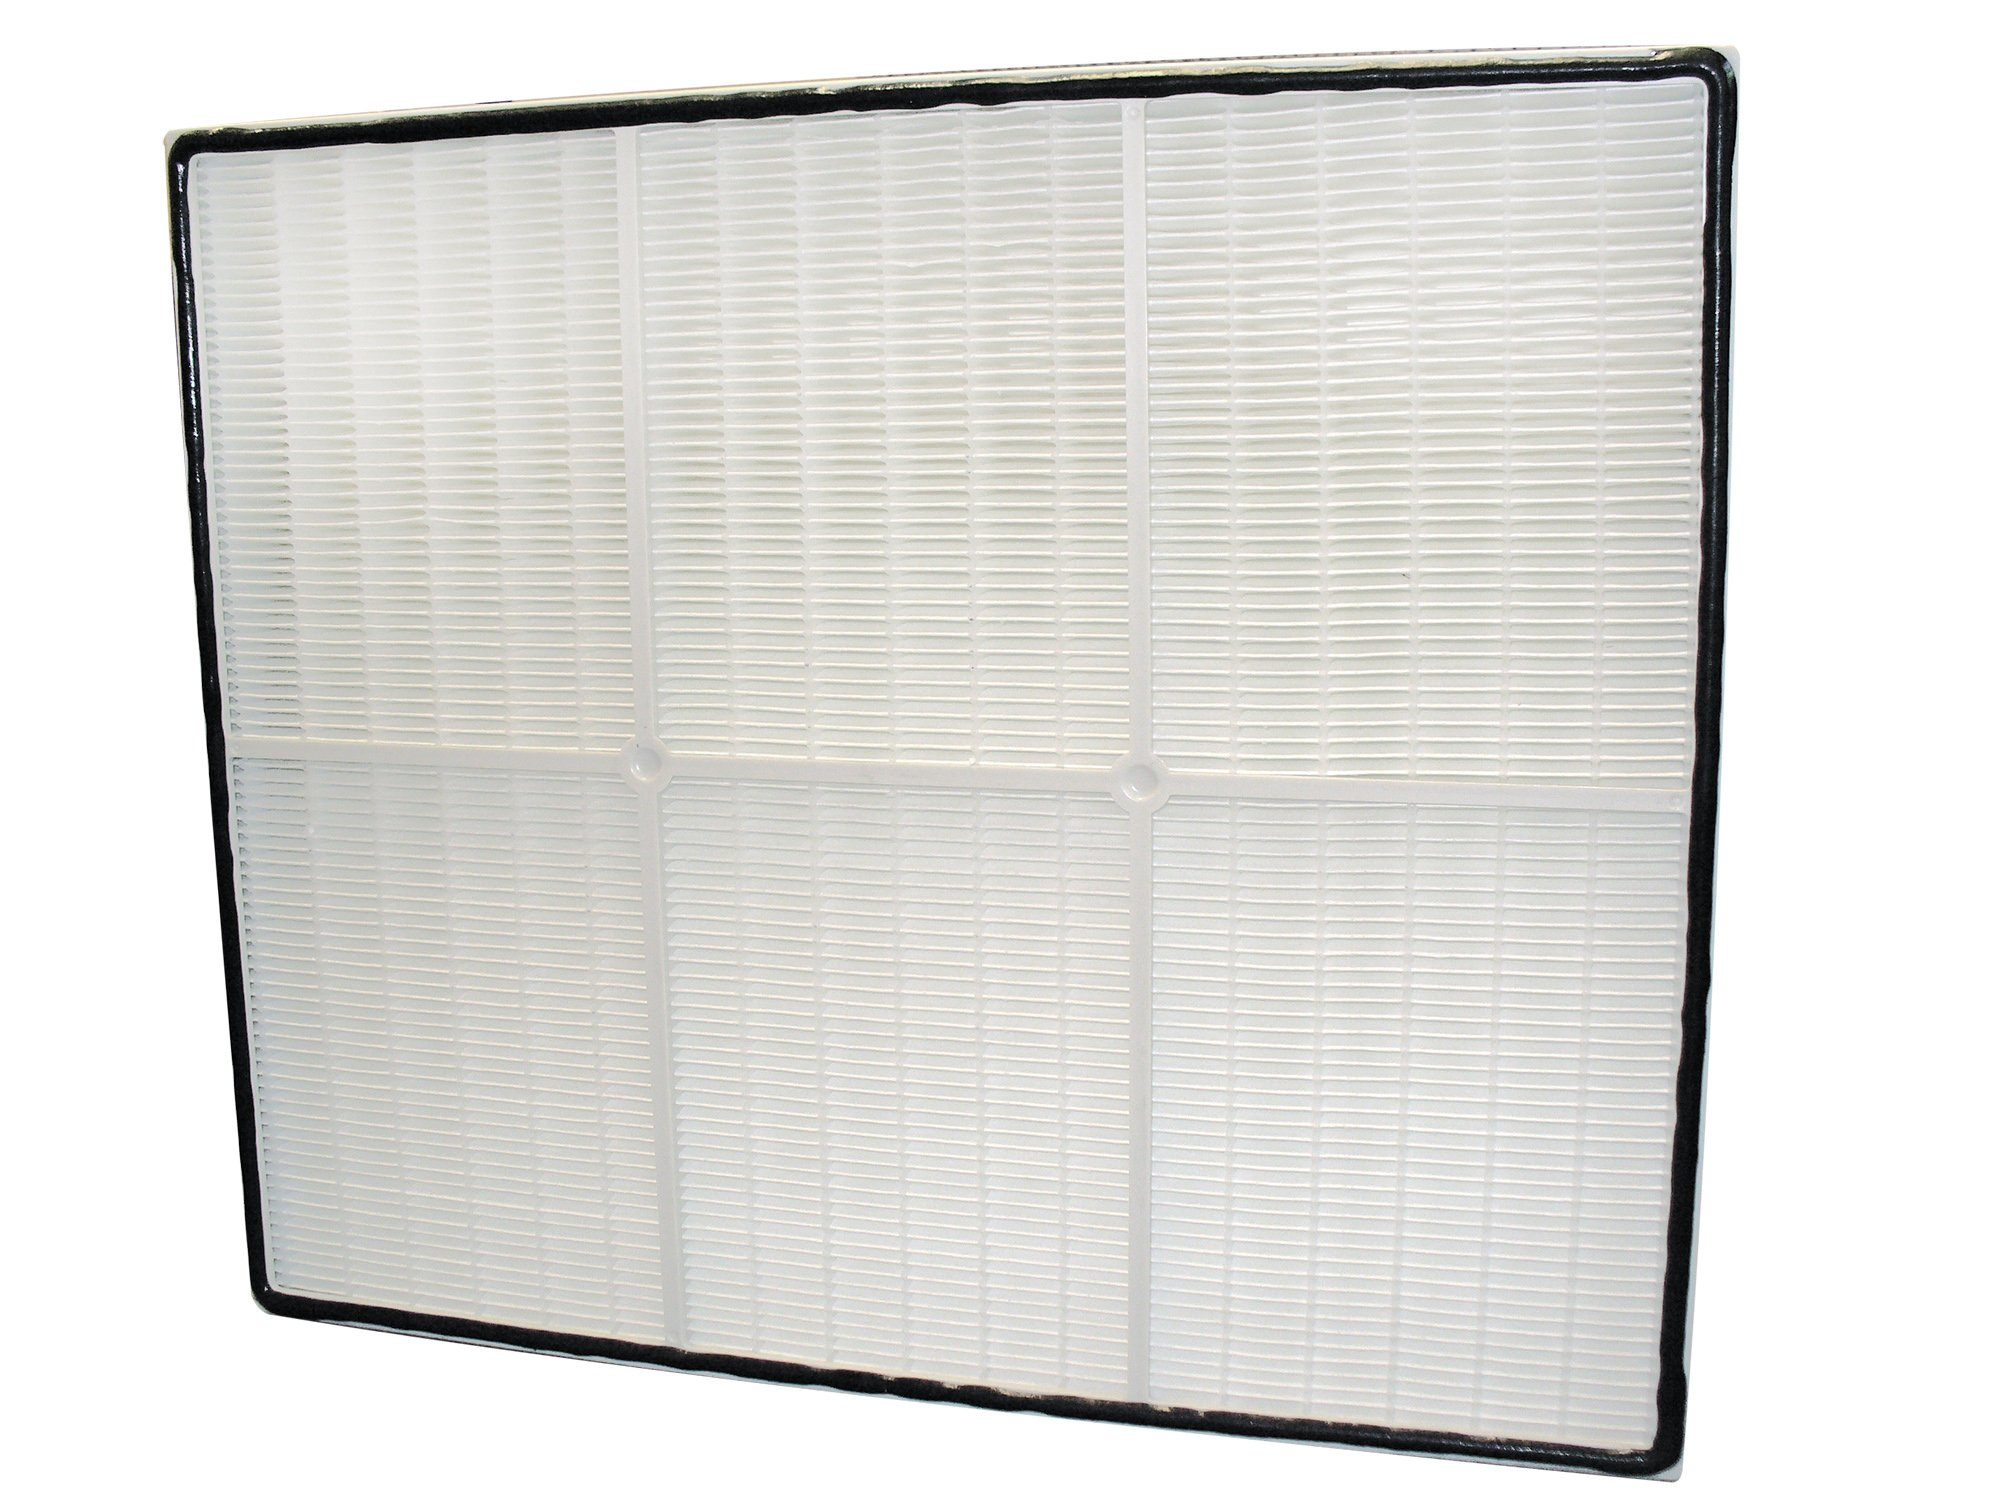 Janitized JAN-HVAC140 Dri-Eaz Defendair HEPA 500 Filter OEM# F321 (1